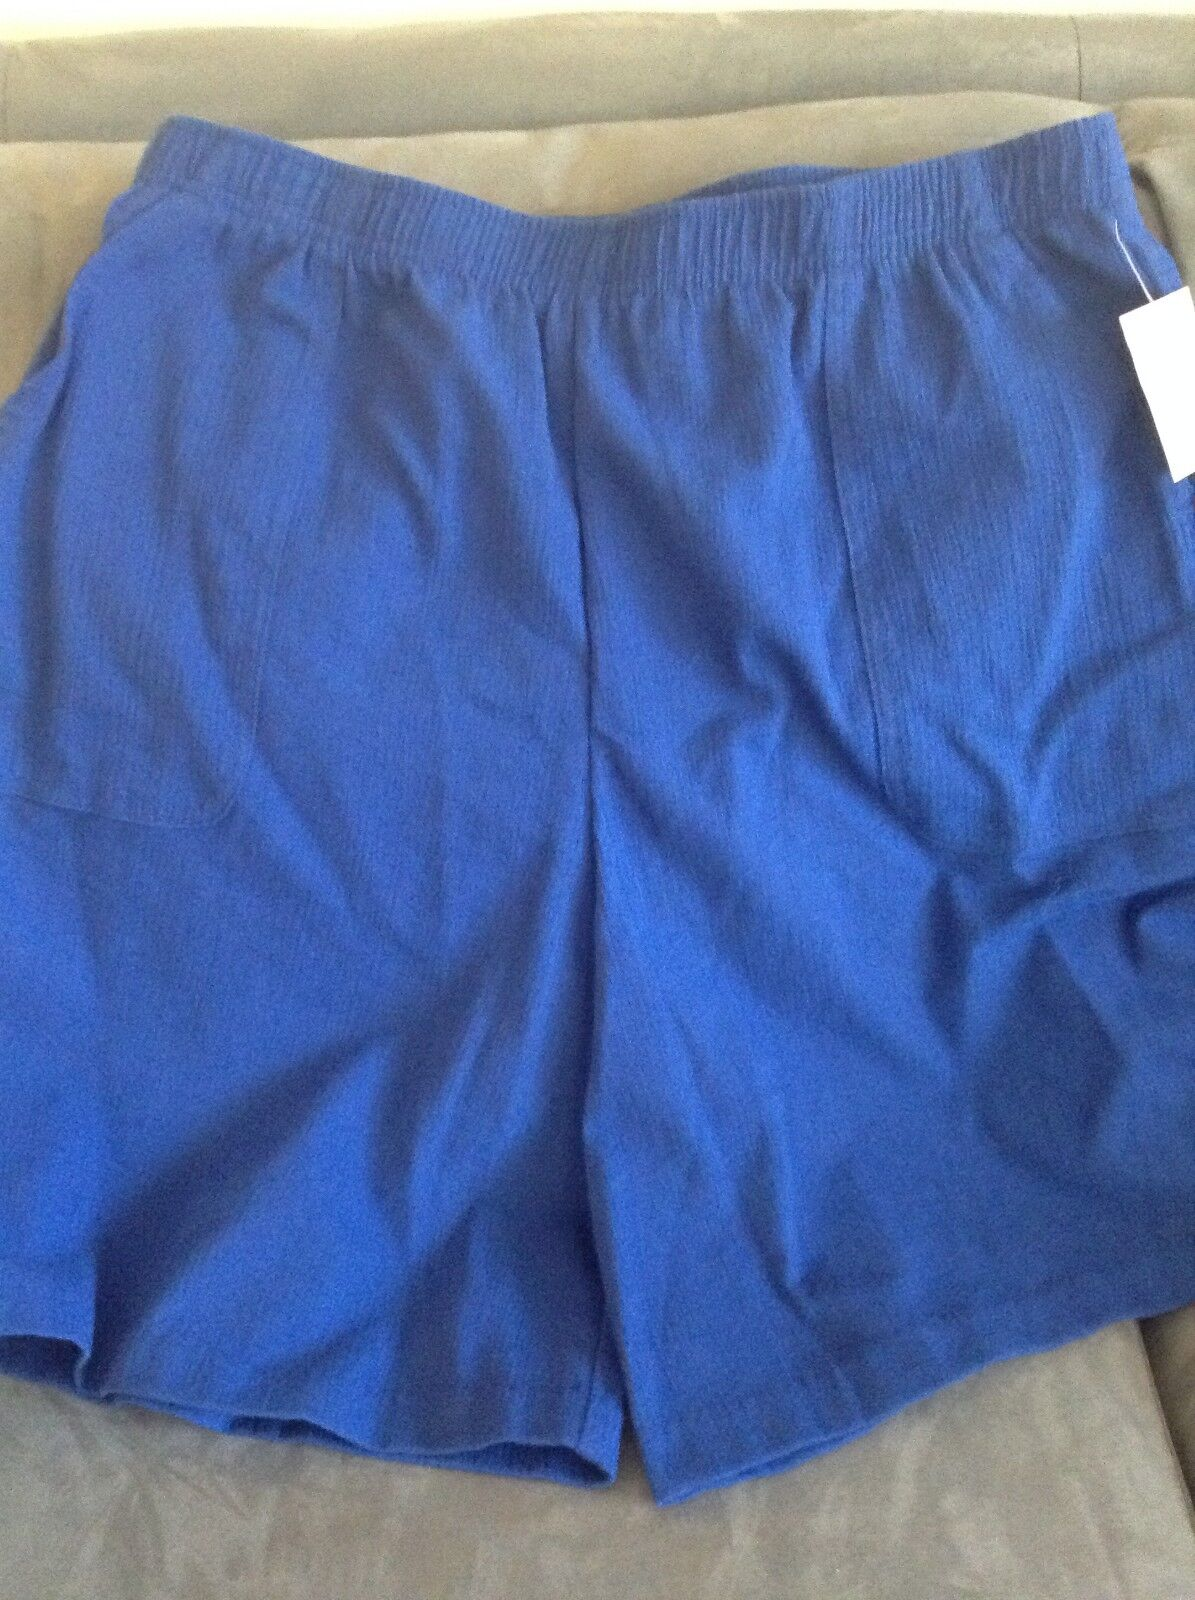 LAURA SCOTT WOMEN'S SIZE XL SURF THE WEB ROYAL blueE SPLIT SKIRT - NEW WITH TAGS